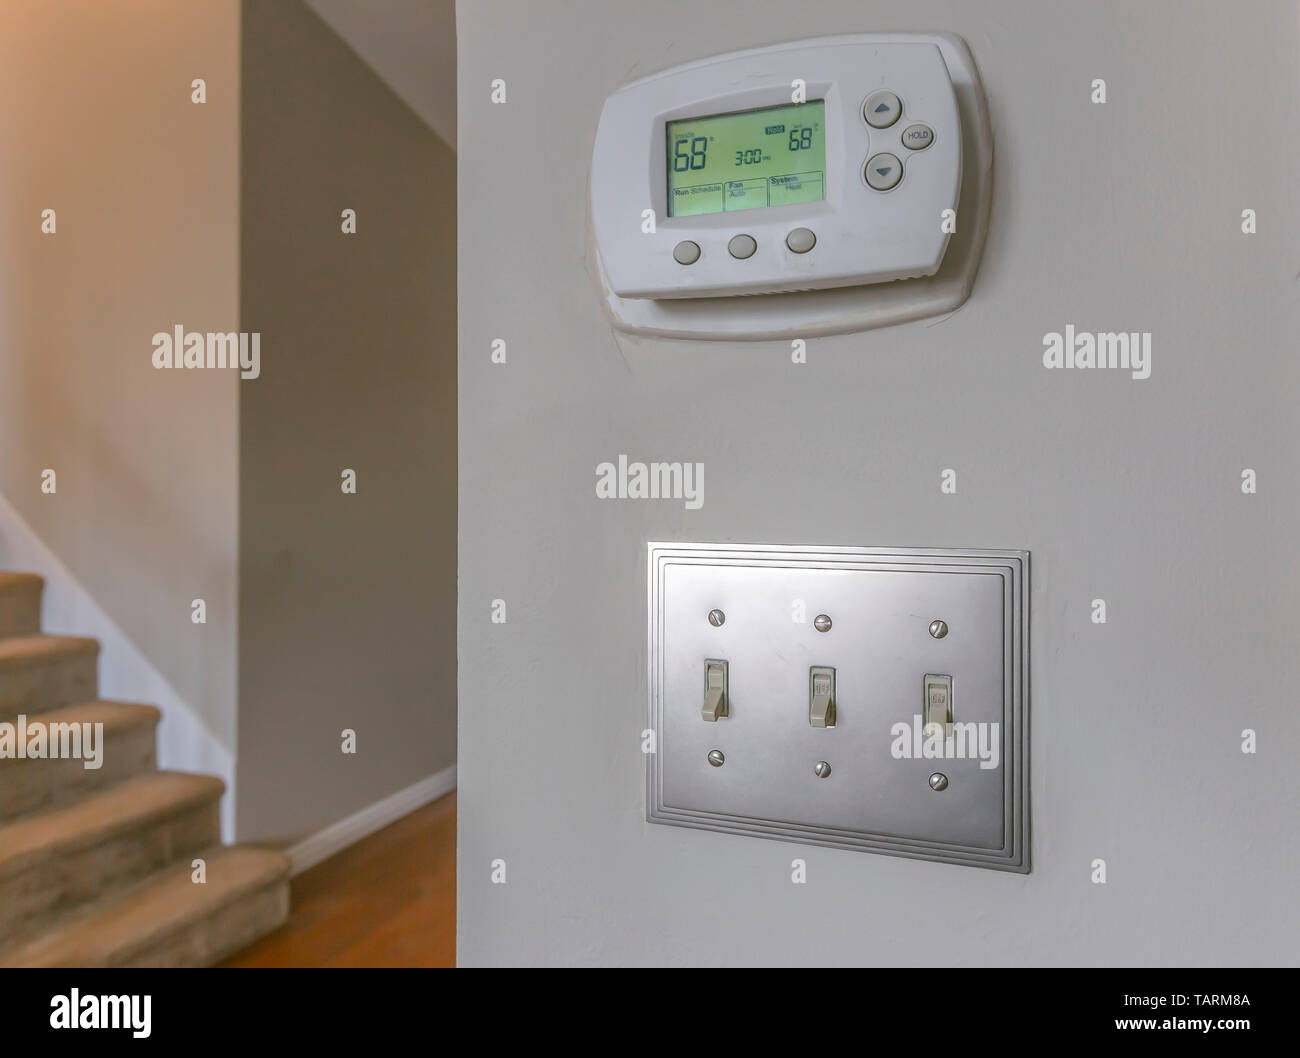 Wall mounted air conditioner unlit control and light switches inside a house. Carpeted stairs and hallway with wooden floor can be seen in the backgro - Stock Image